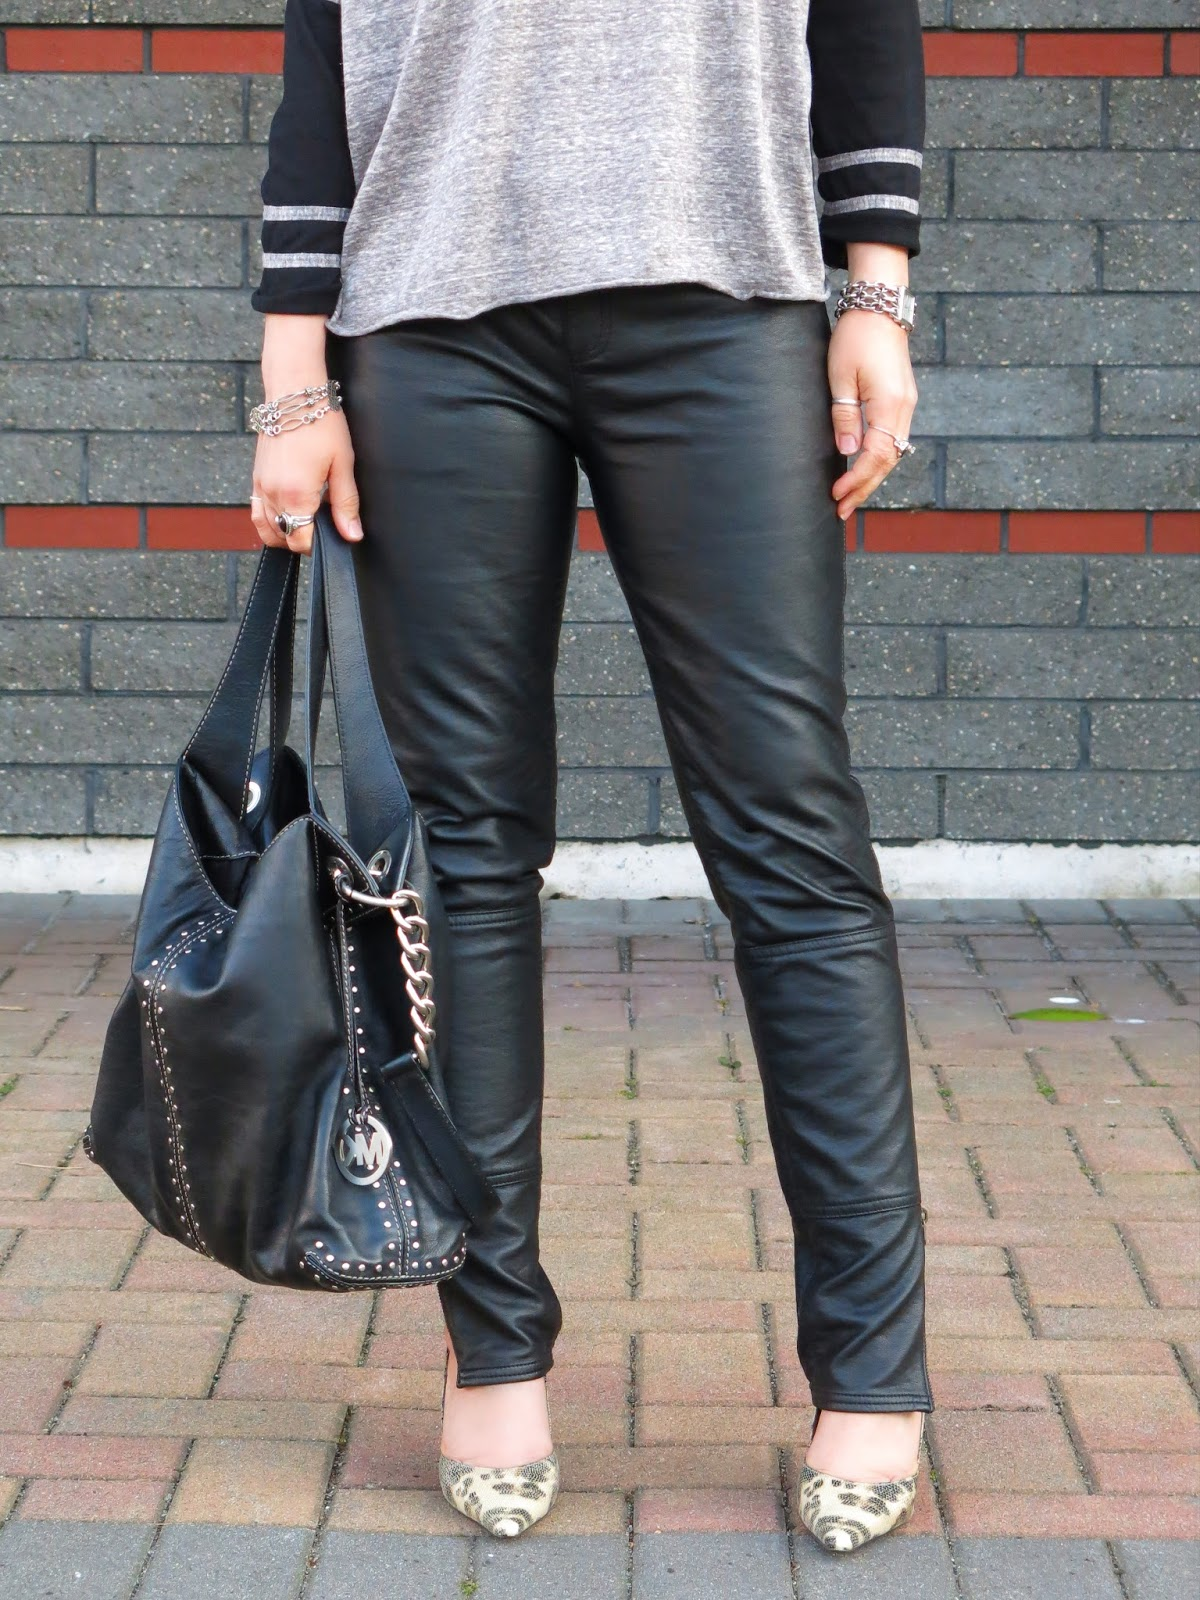 styling vegan leather jeans with a long-sleeve baseball tee and animal-print pumps